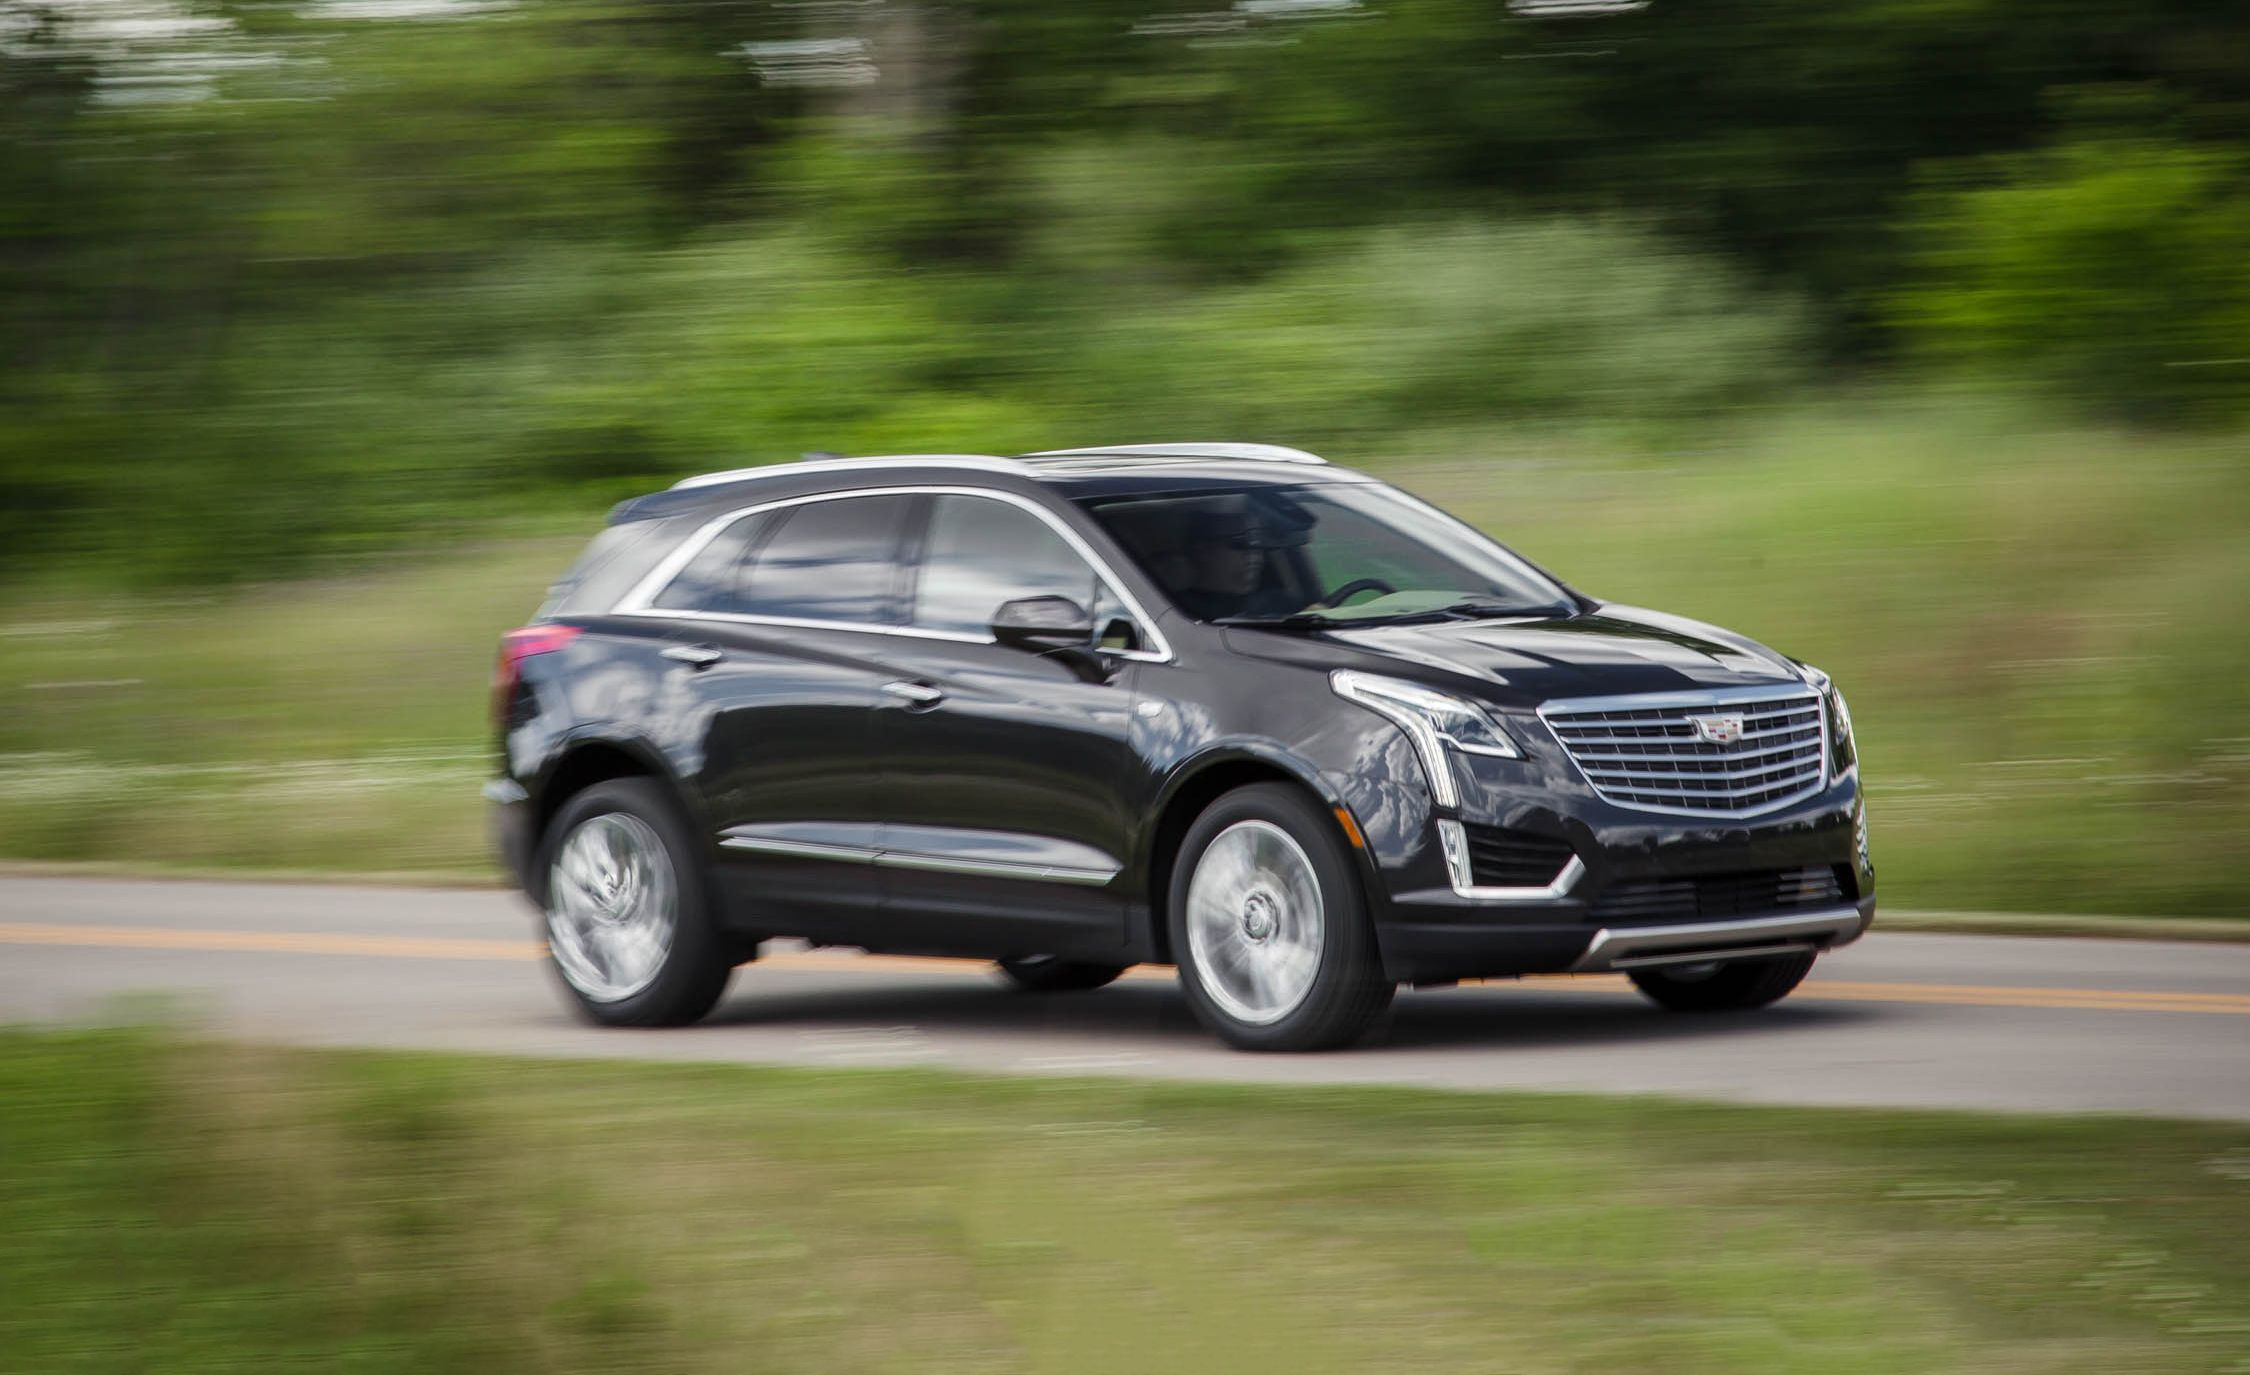 cadillac preview small articles suv a srx crossover sneak sleek